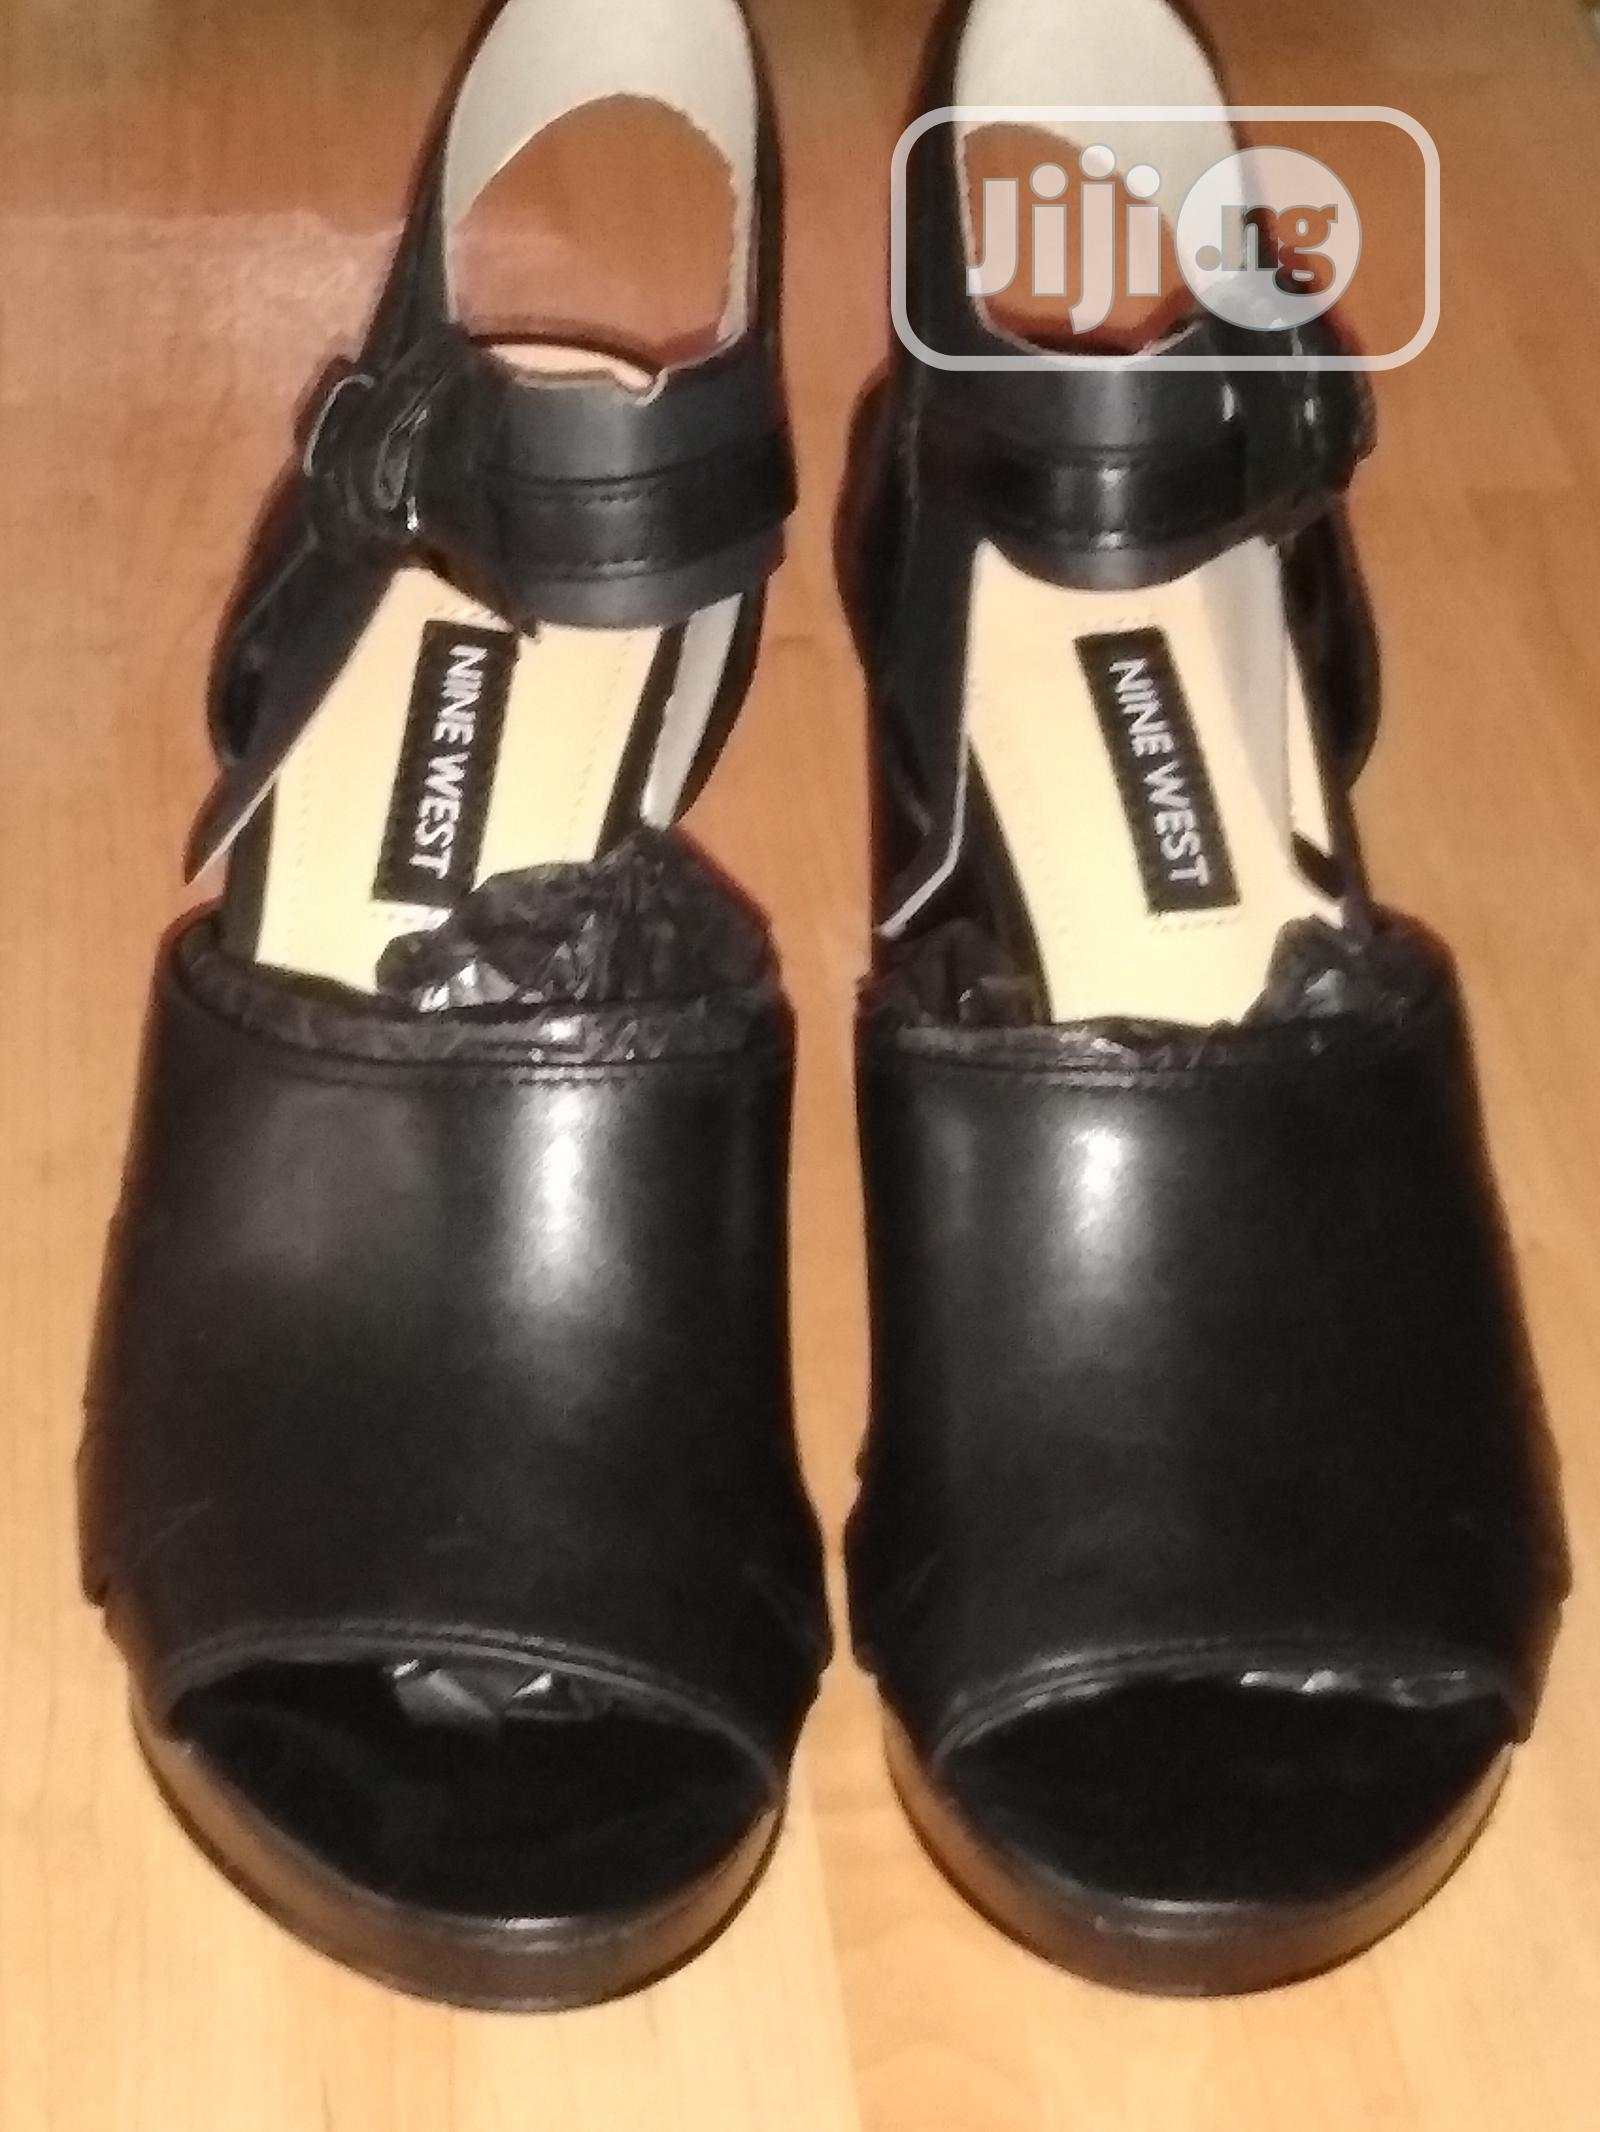 Black Block Heel Leather Occasions Work Open Toe Shoes   Shoes for sale in Surulere, Lagos State, Nigeria